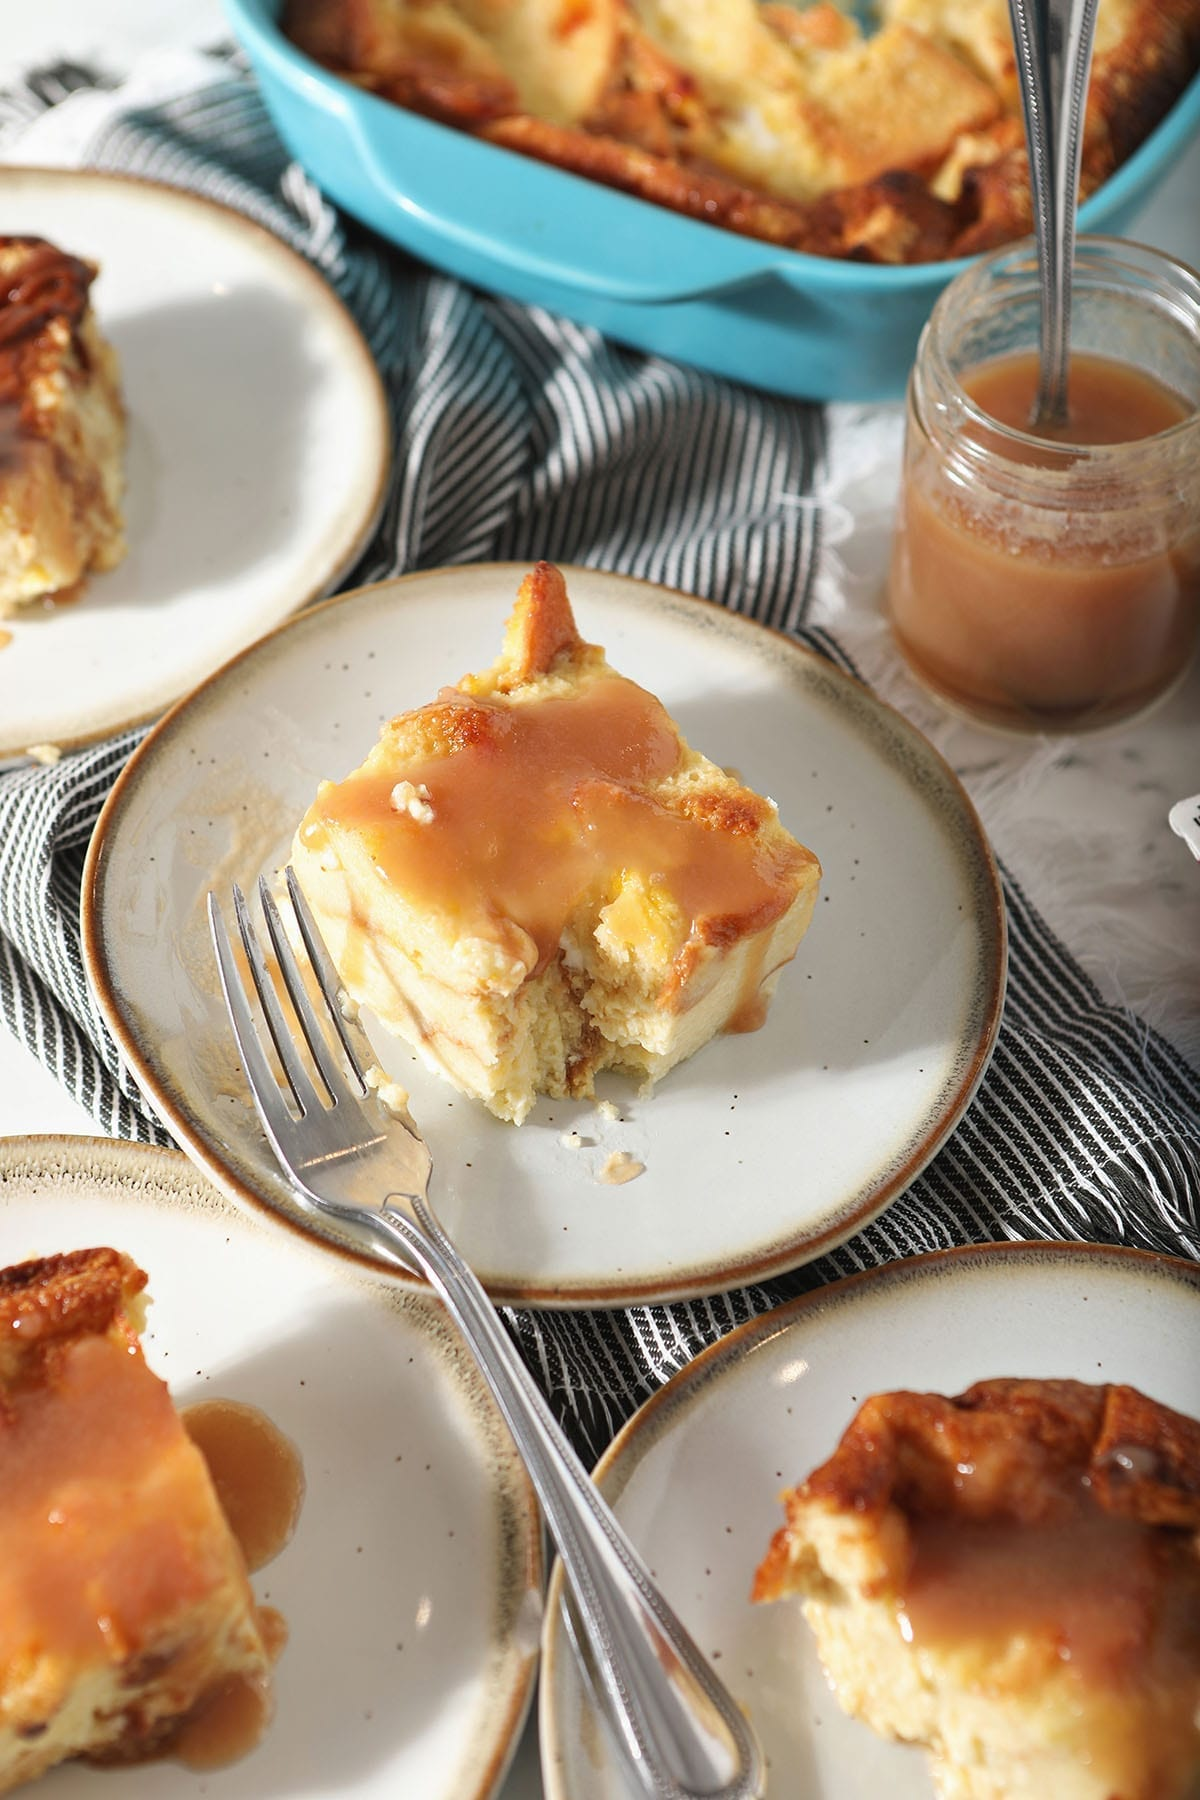 A cut into piece of bread pudding with caramel sauce on a white plate, surrounded by other slices of the dessert and a jar of caramel sauce